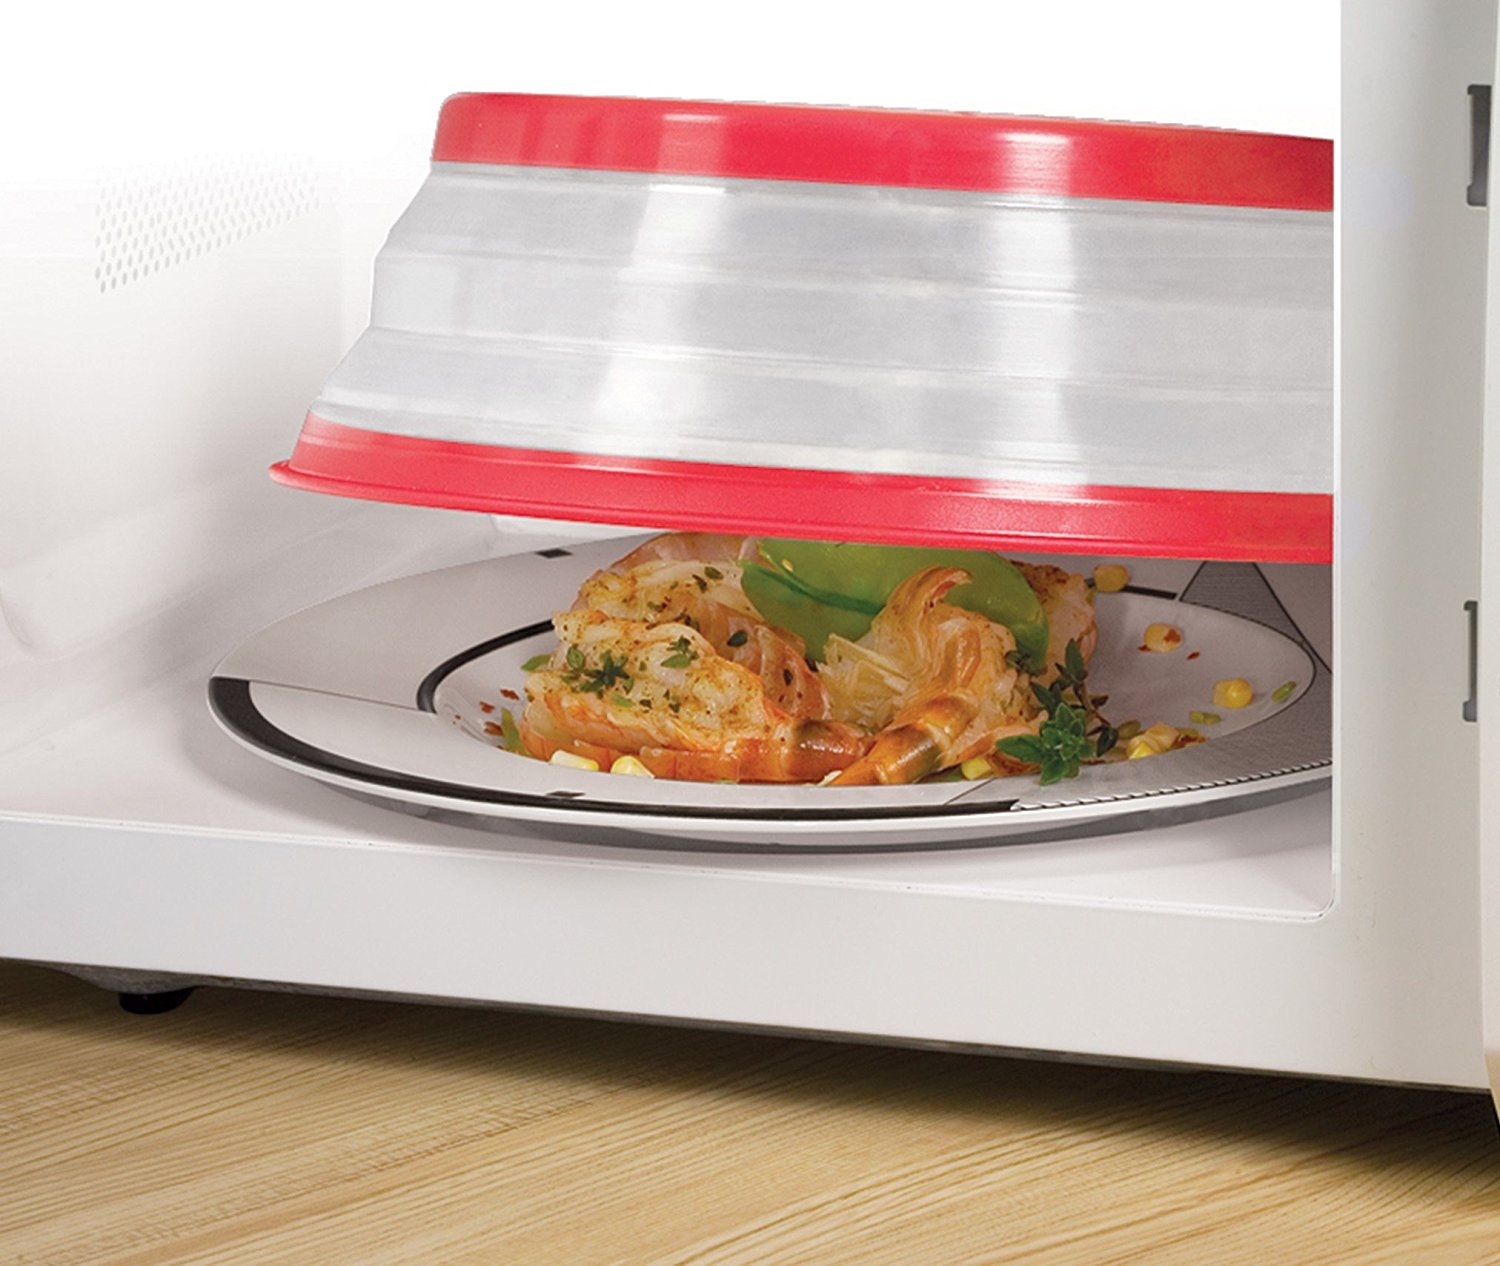 Tovolo Collapsible Microwave Cover Best Offer Reviews